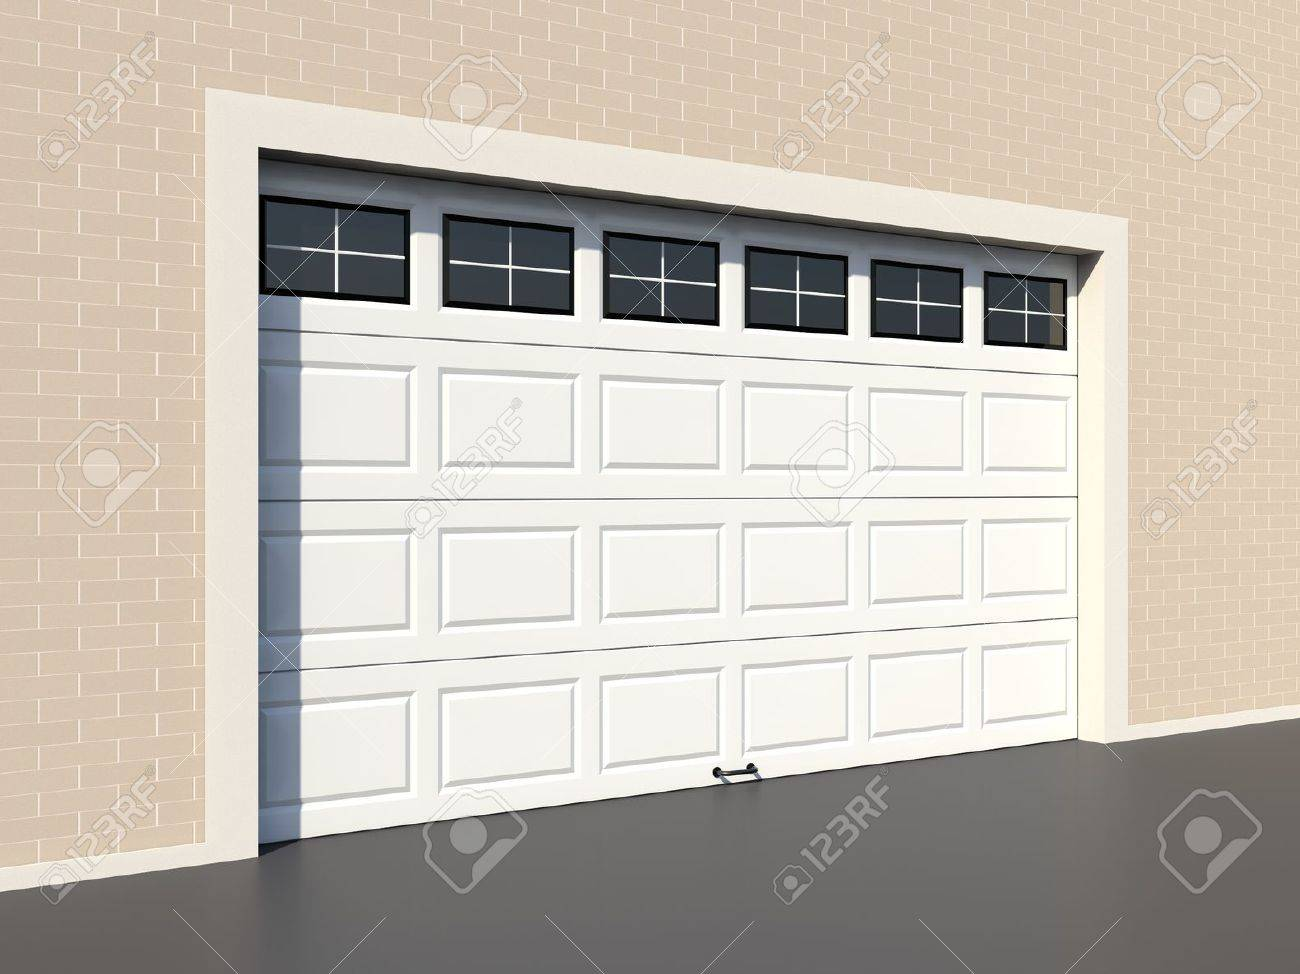 White Modern Garage Door With Windows Stock Photo Picture And